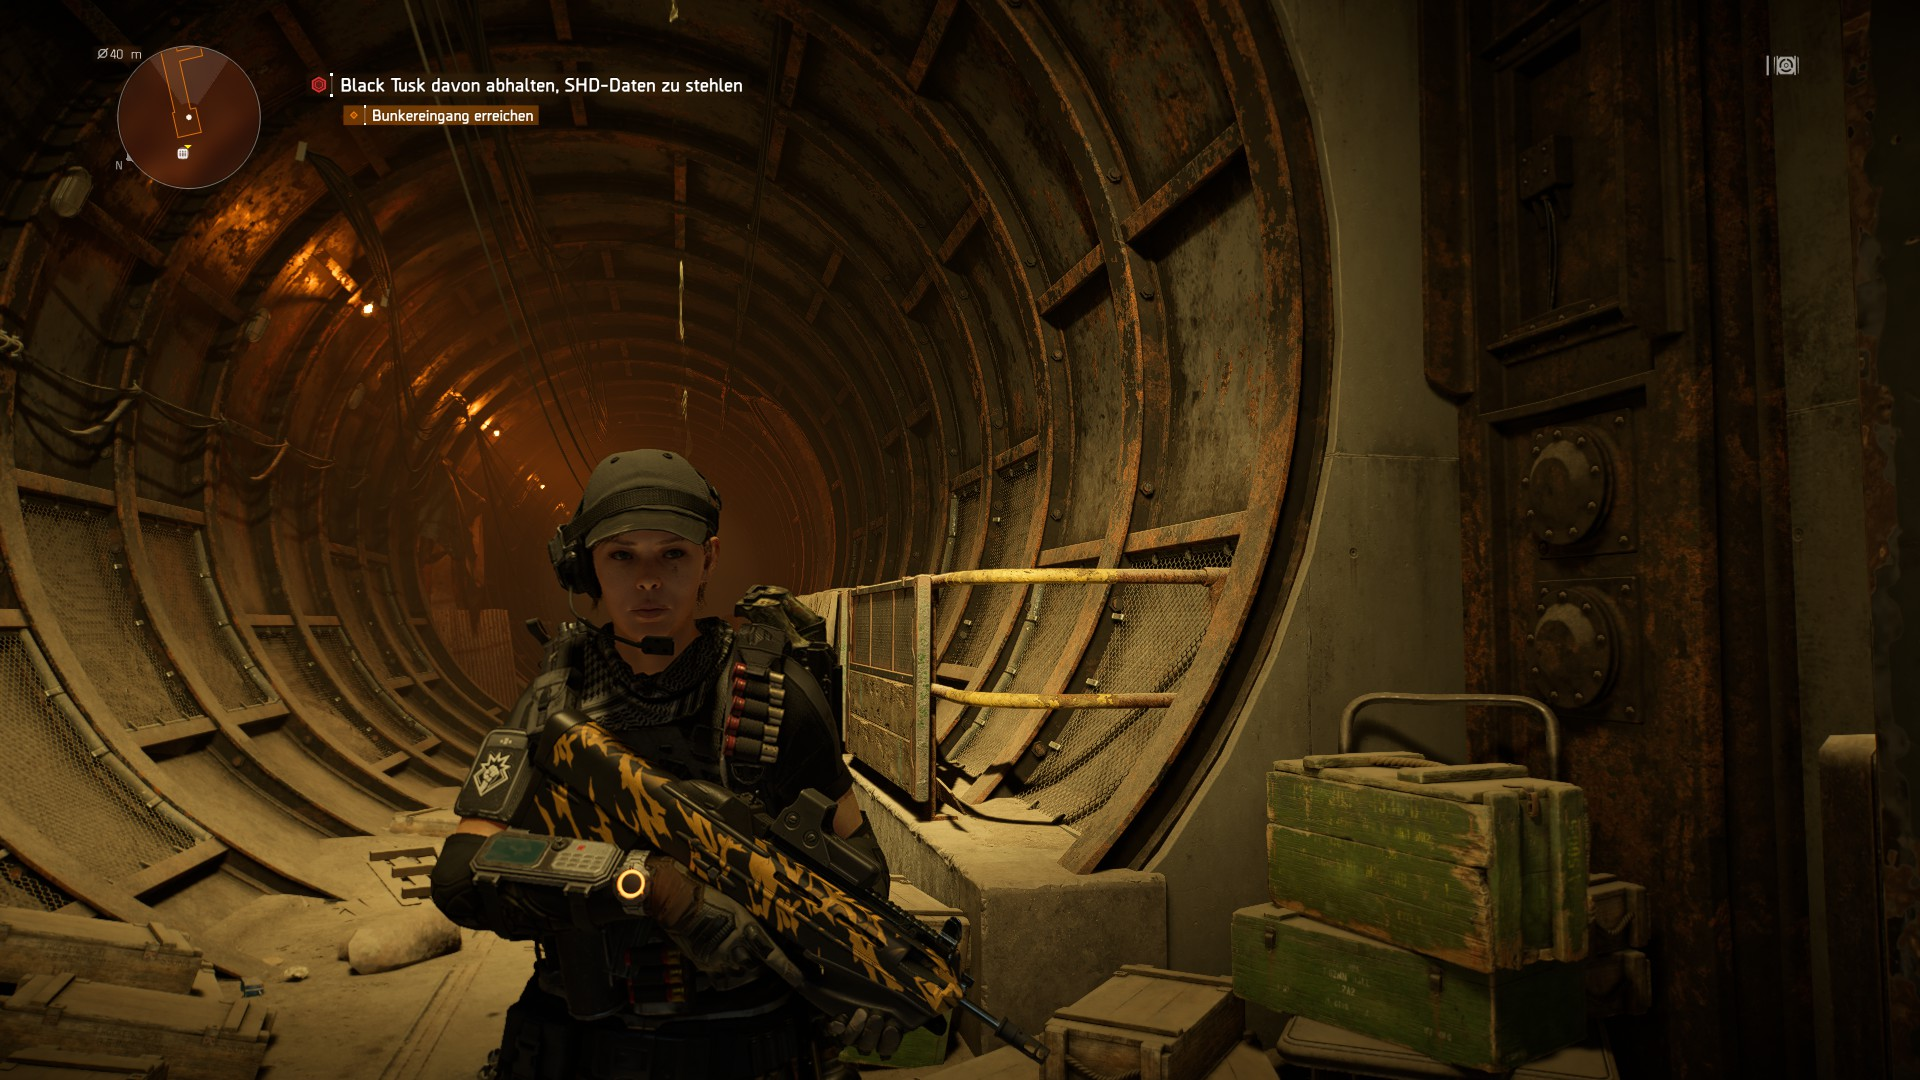 Tom Clancy's The Division® 22019-4-15-19-12-50.jpg